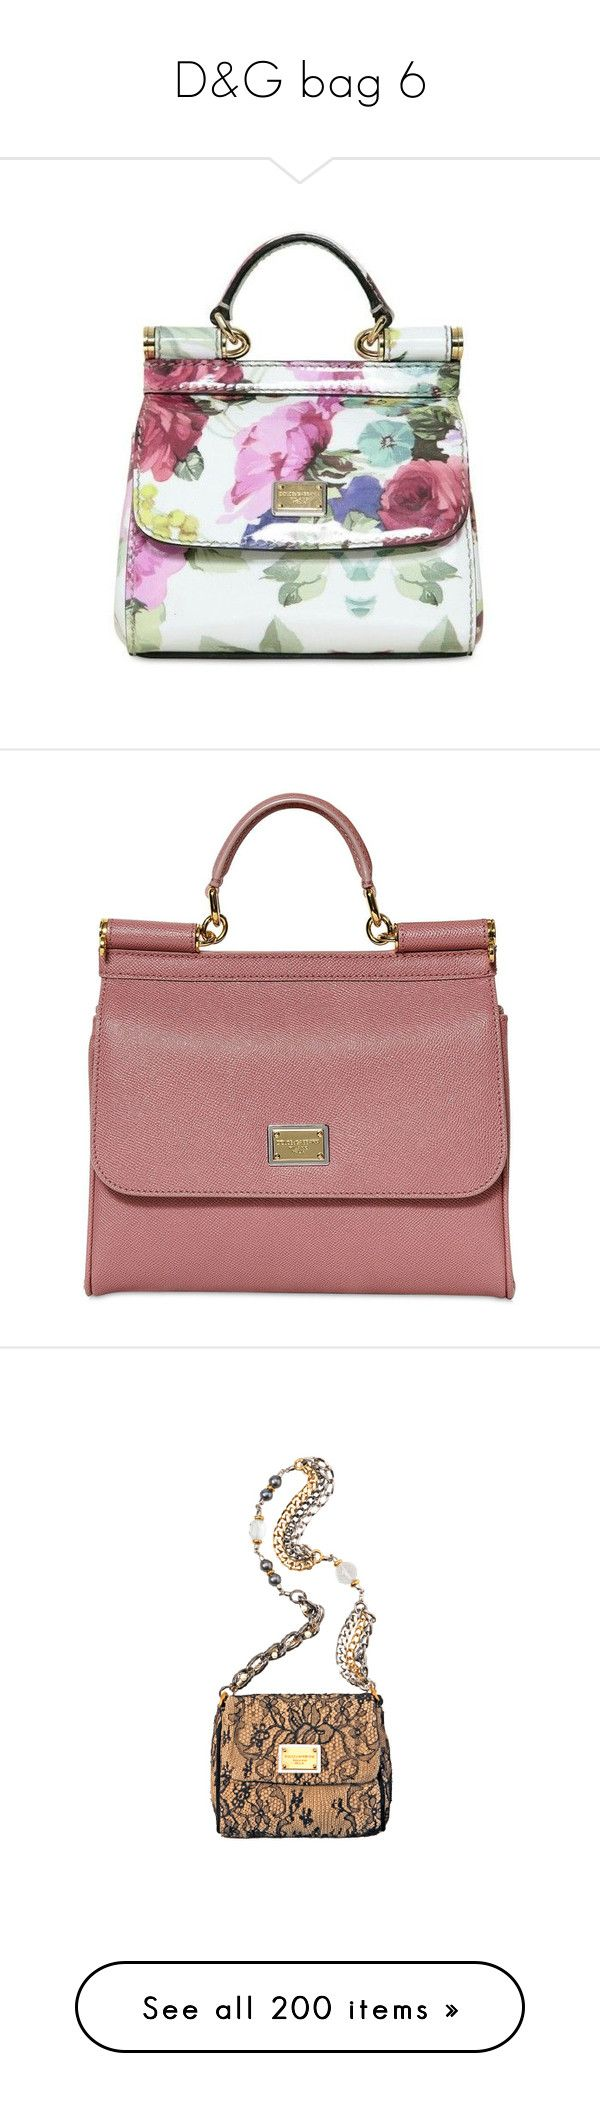 """""""D&G bag 6"""" by alina-chipchikova ❤ liked on Polyvore featuring bags, handbags, white patent leather handbag, flower print handbags, dolce gabbana purses, flower print purse, white patent leather purse, purses, powder pink and red hand bags"""